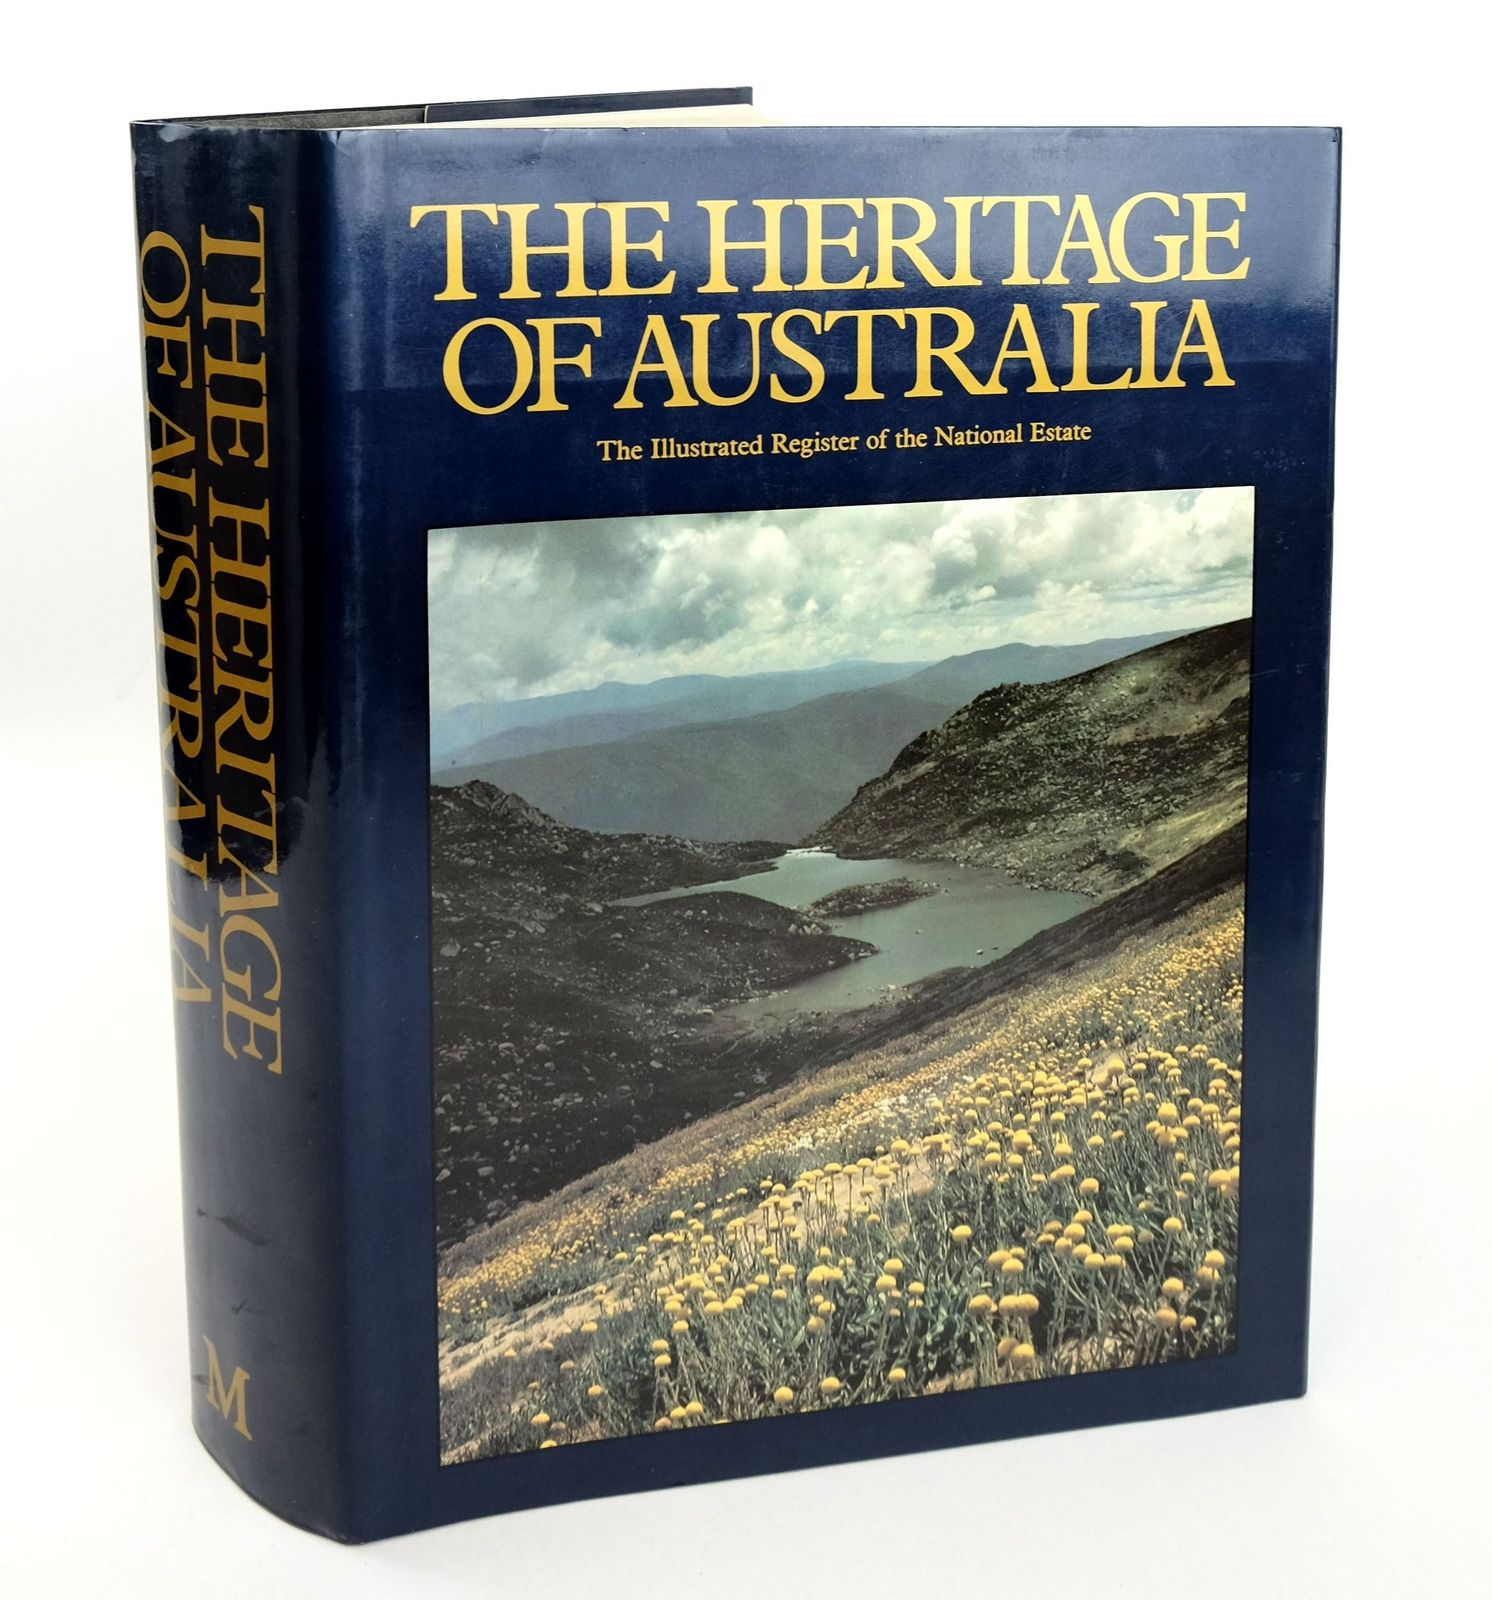 Photo of THE HERITAGE OF AUSTRALIA: THE ILLUSTRATED REGISTER OF THE NATIONAL ESTATE published by The Macmillan Company Of Australia (STOCK CODE: 1819029)  for sale by Stella & Rose's Books